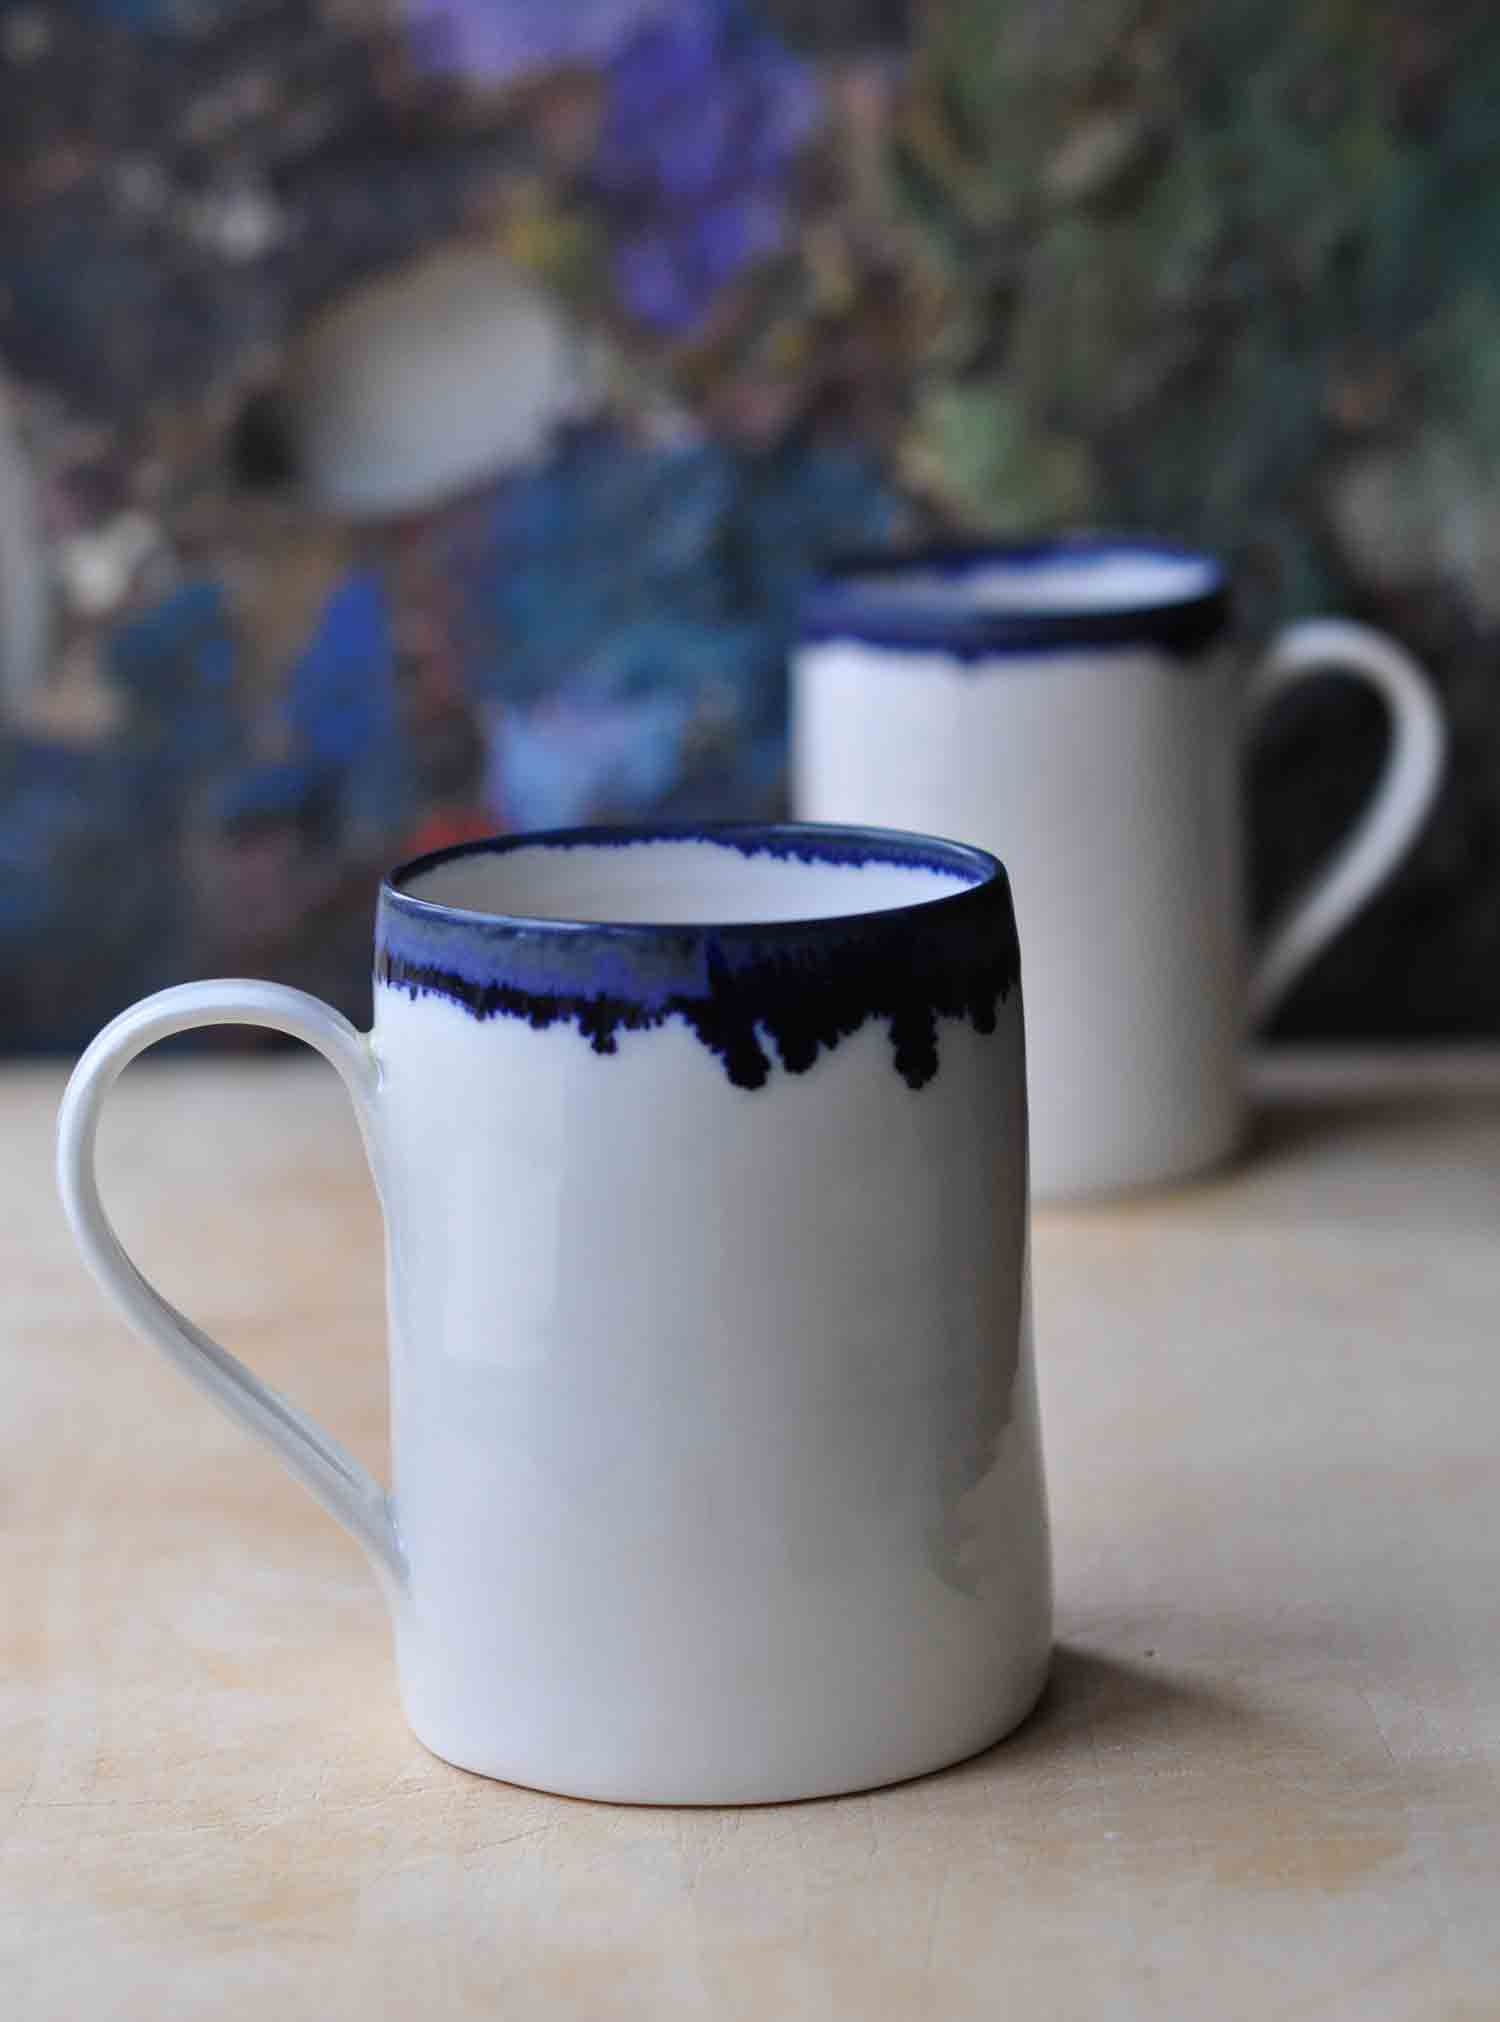 Hand Thrown Porcelain Mug With Indigo Rim By Edit Juhasz